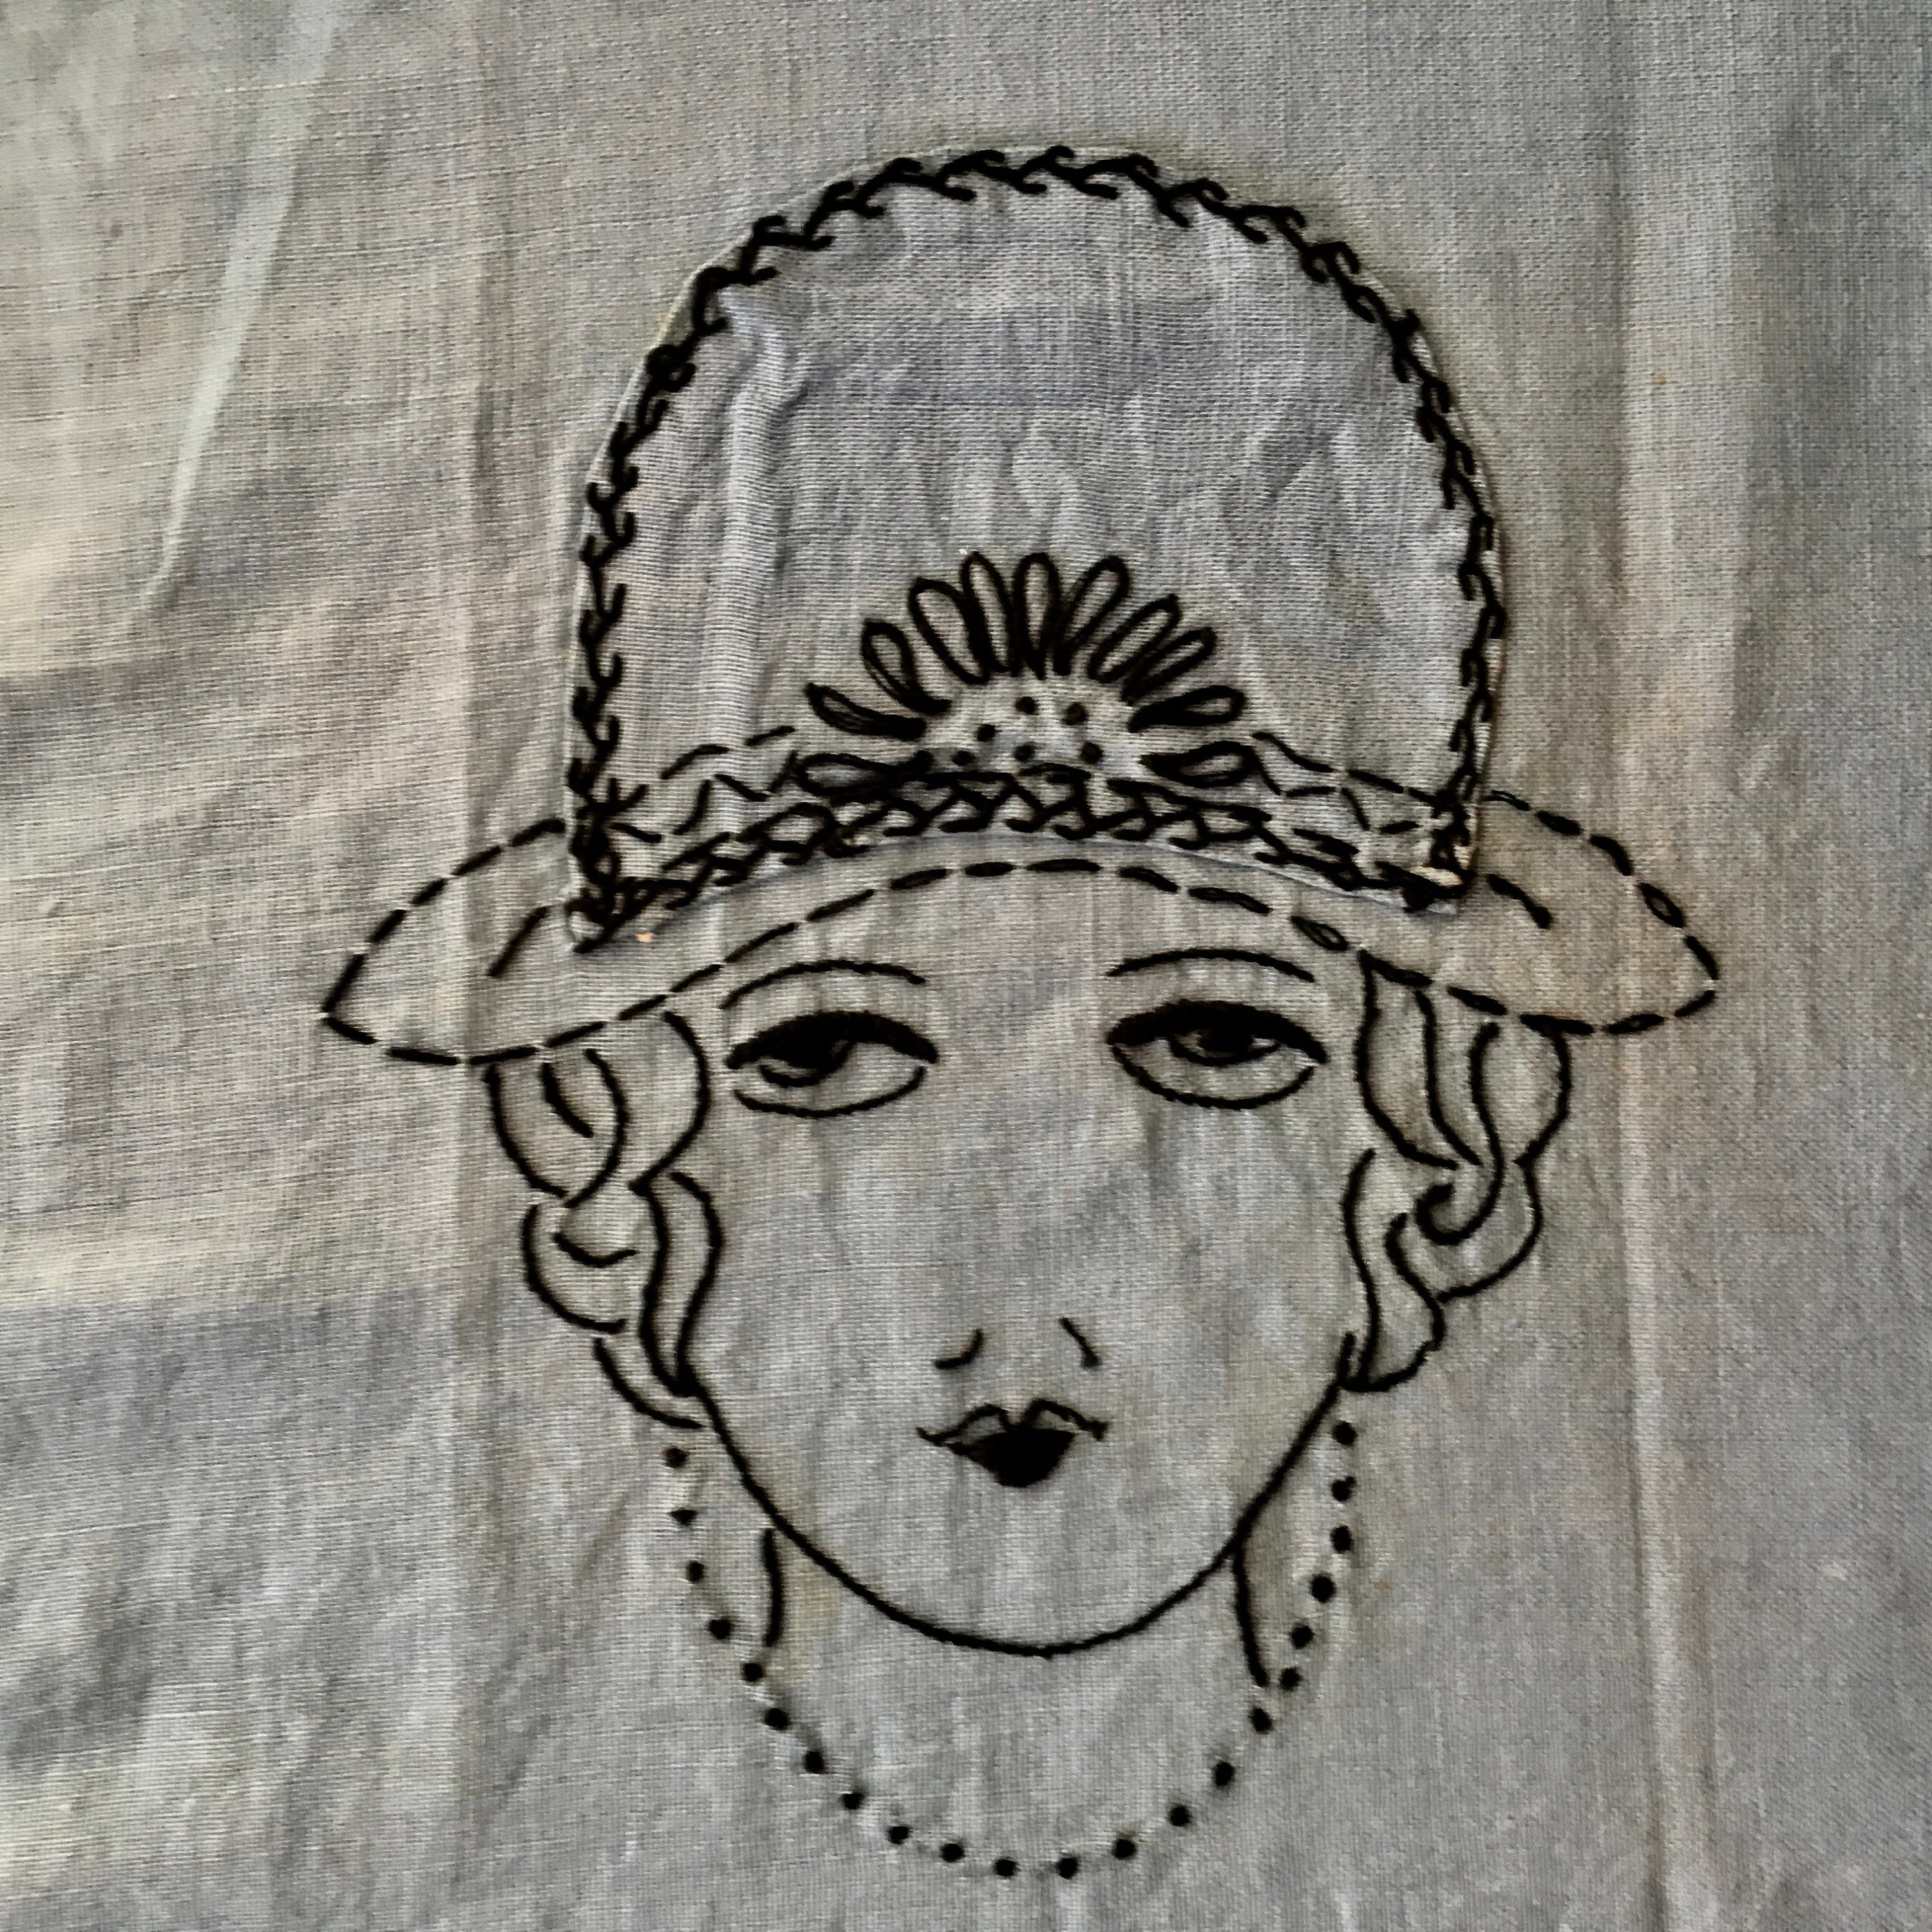 Blue Apron from Vintage Stamped Cloth with Embroidery  Apron for Women Size XS-S